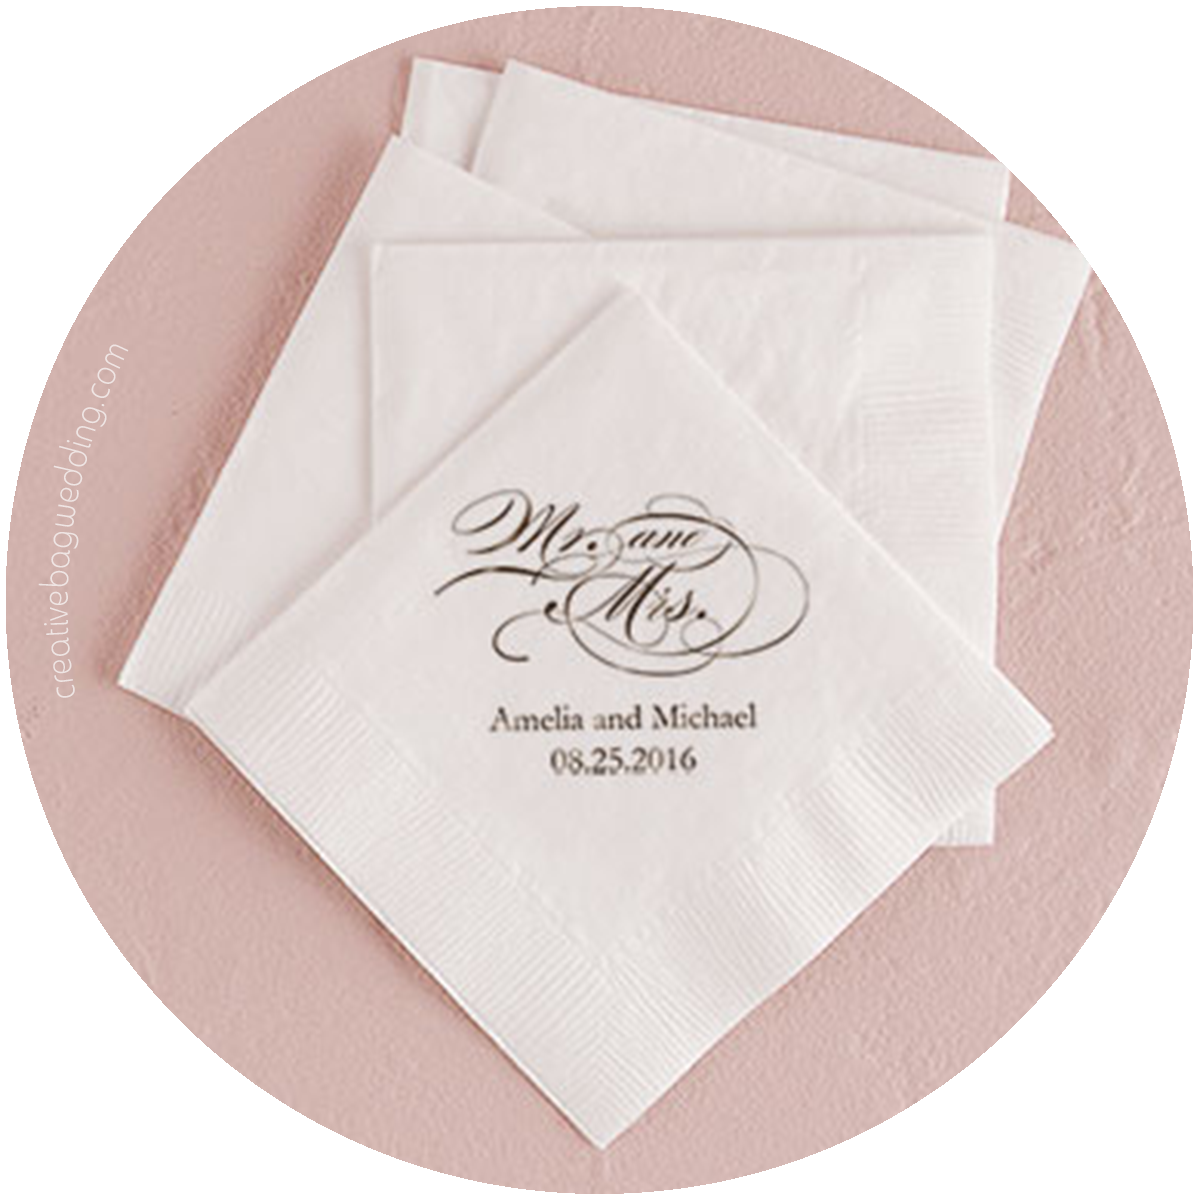 custom napkins from Creative Bag Wedding | Creative Bag